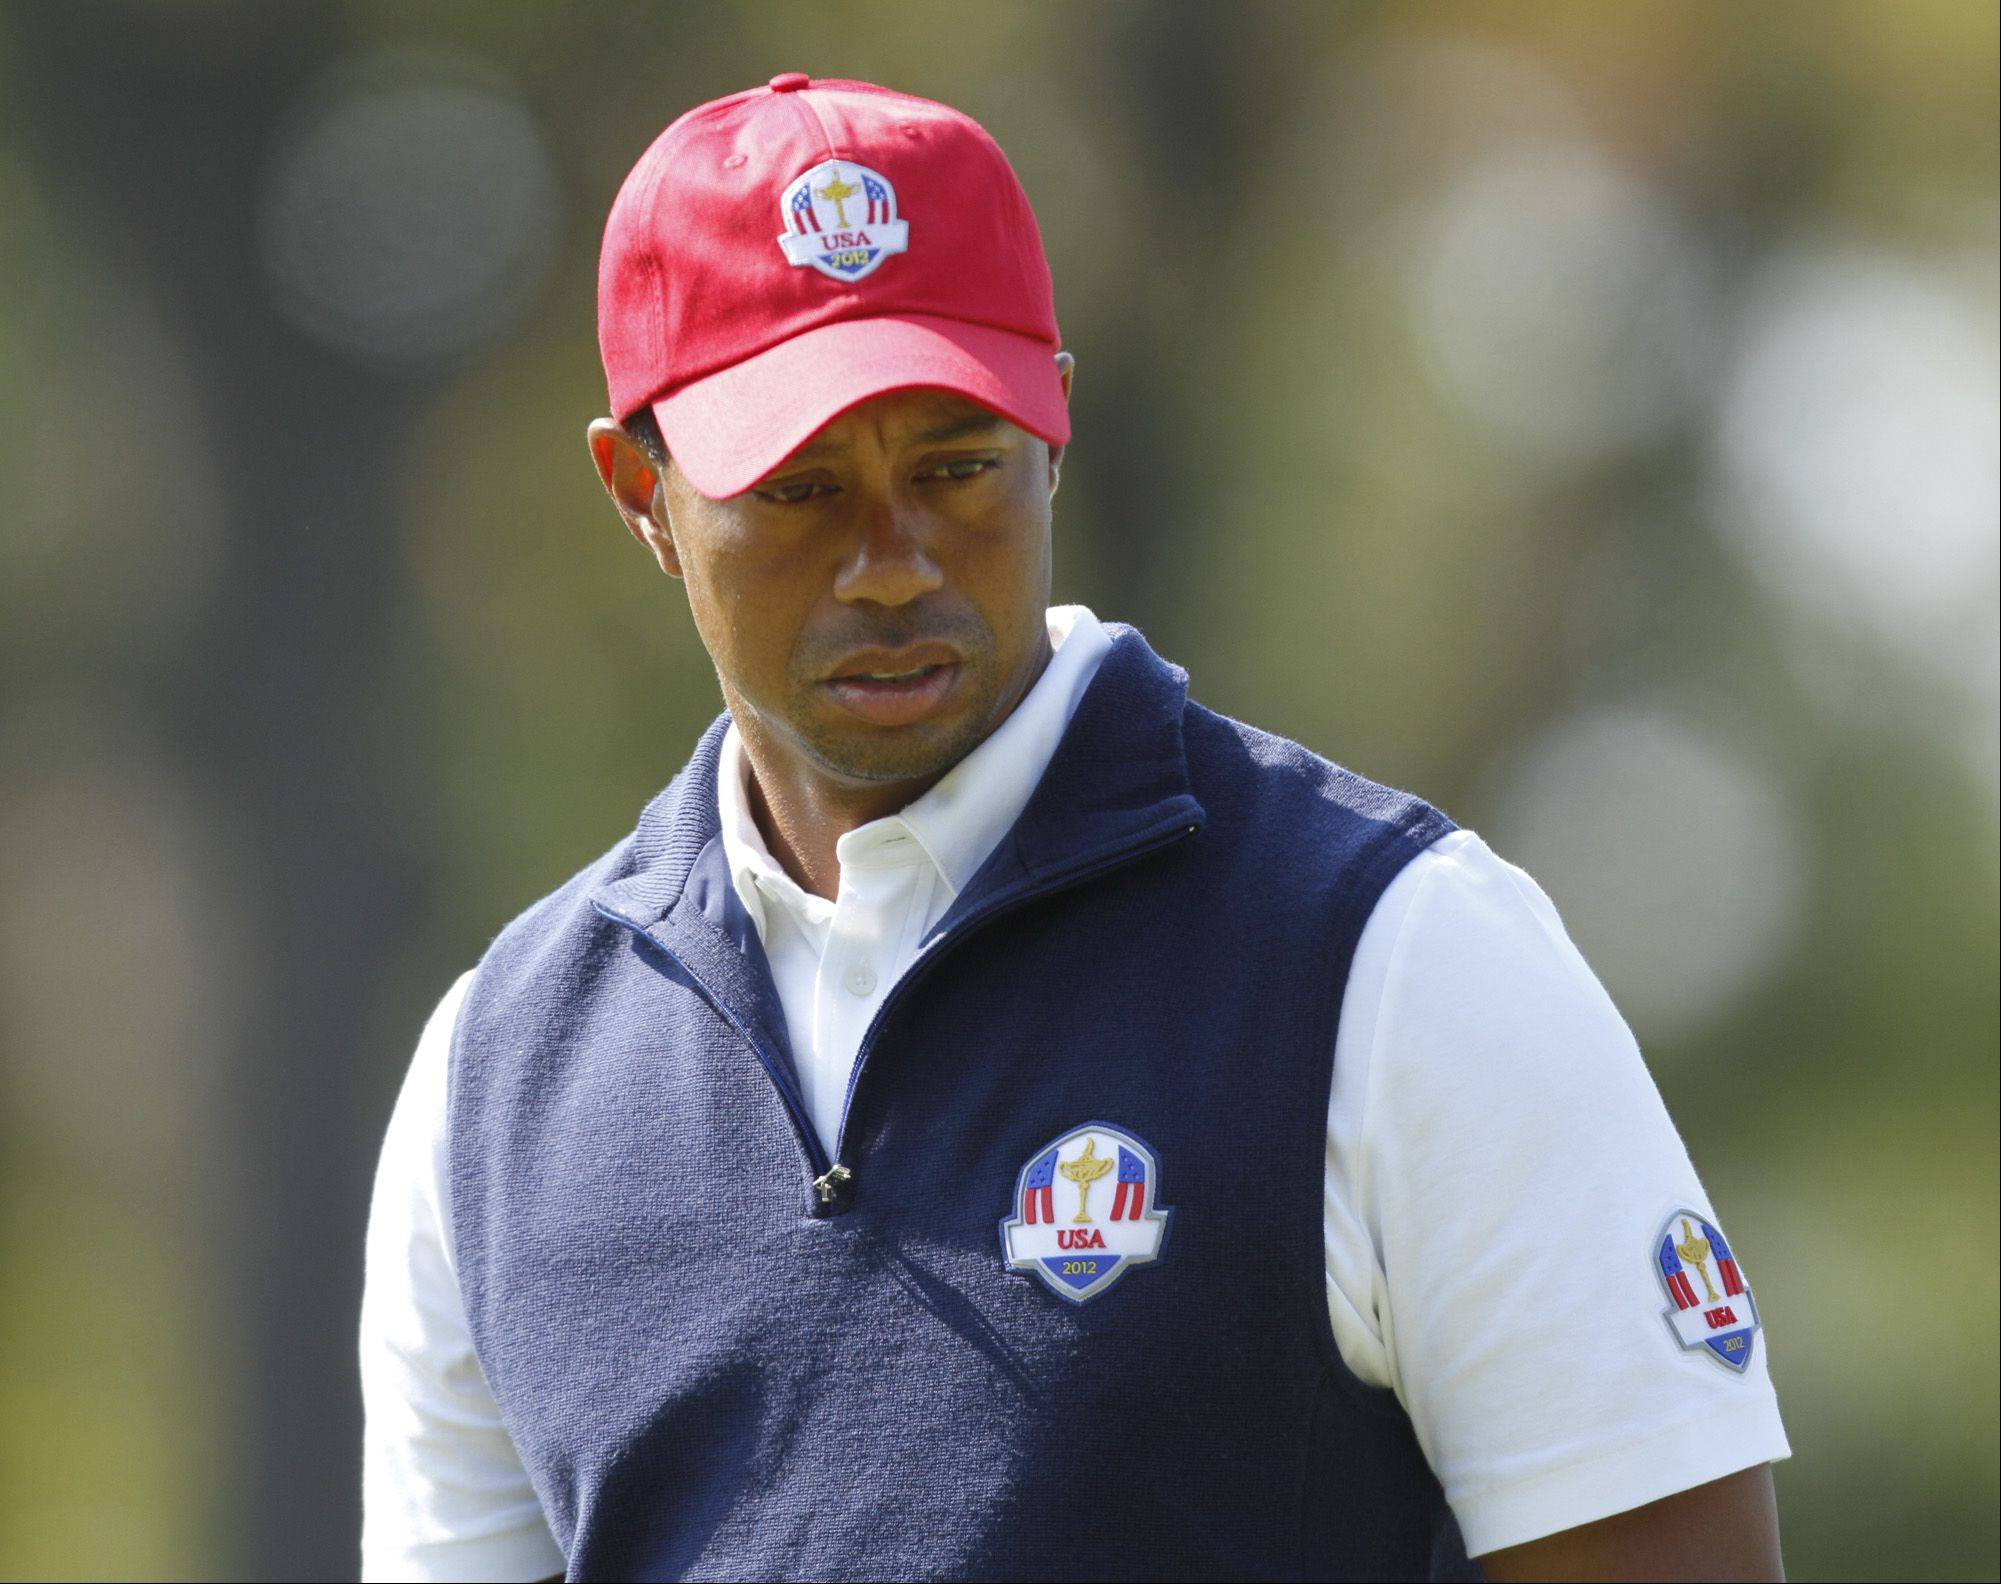 Tiger Woods got off to a rough start in Friday's Ryder Cup at Medinah, dropping his opening match with teammate Steve Stricker. He bounced back with five birdies in the afternoon session, but rookie Nicolas Colsaerts was hotter and carried Lee Westwood to a 1-up victory over the Woods-Stricker team.